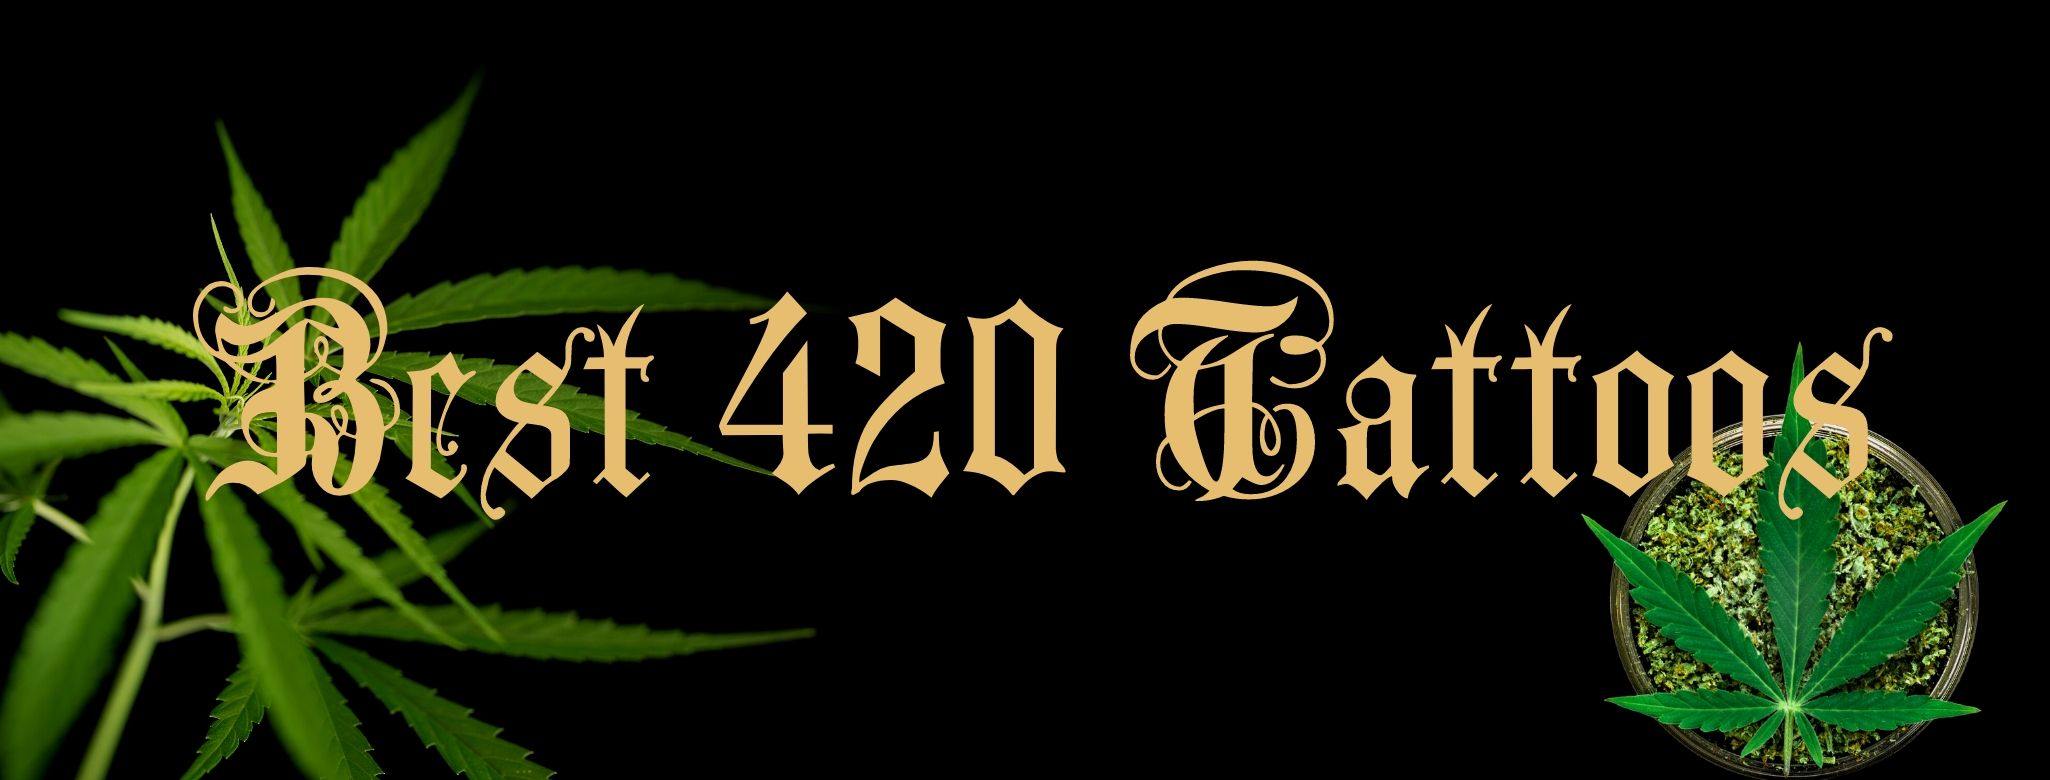 Best 420 and Weed Tattoos